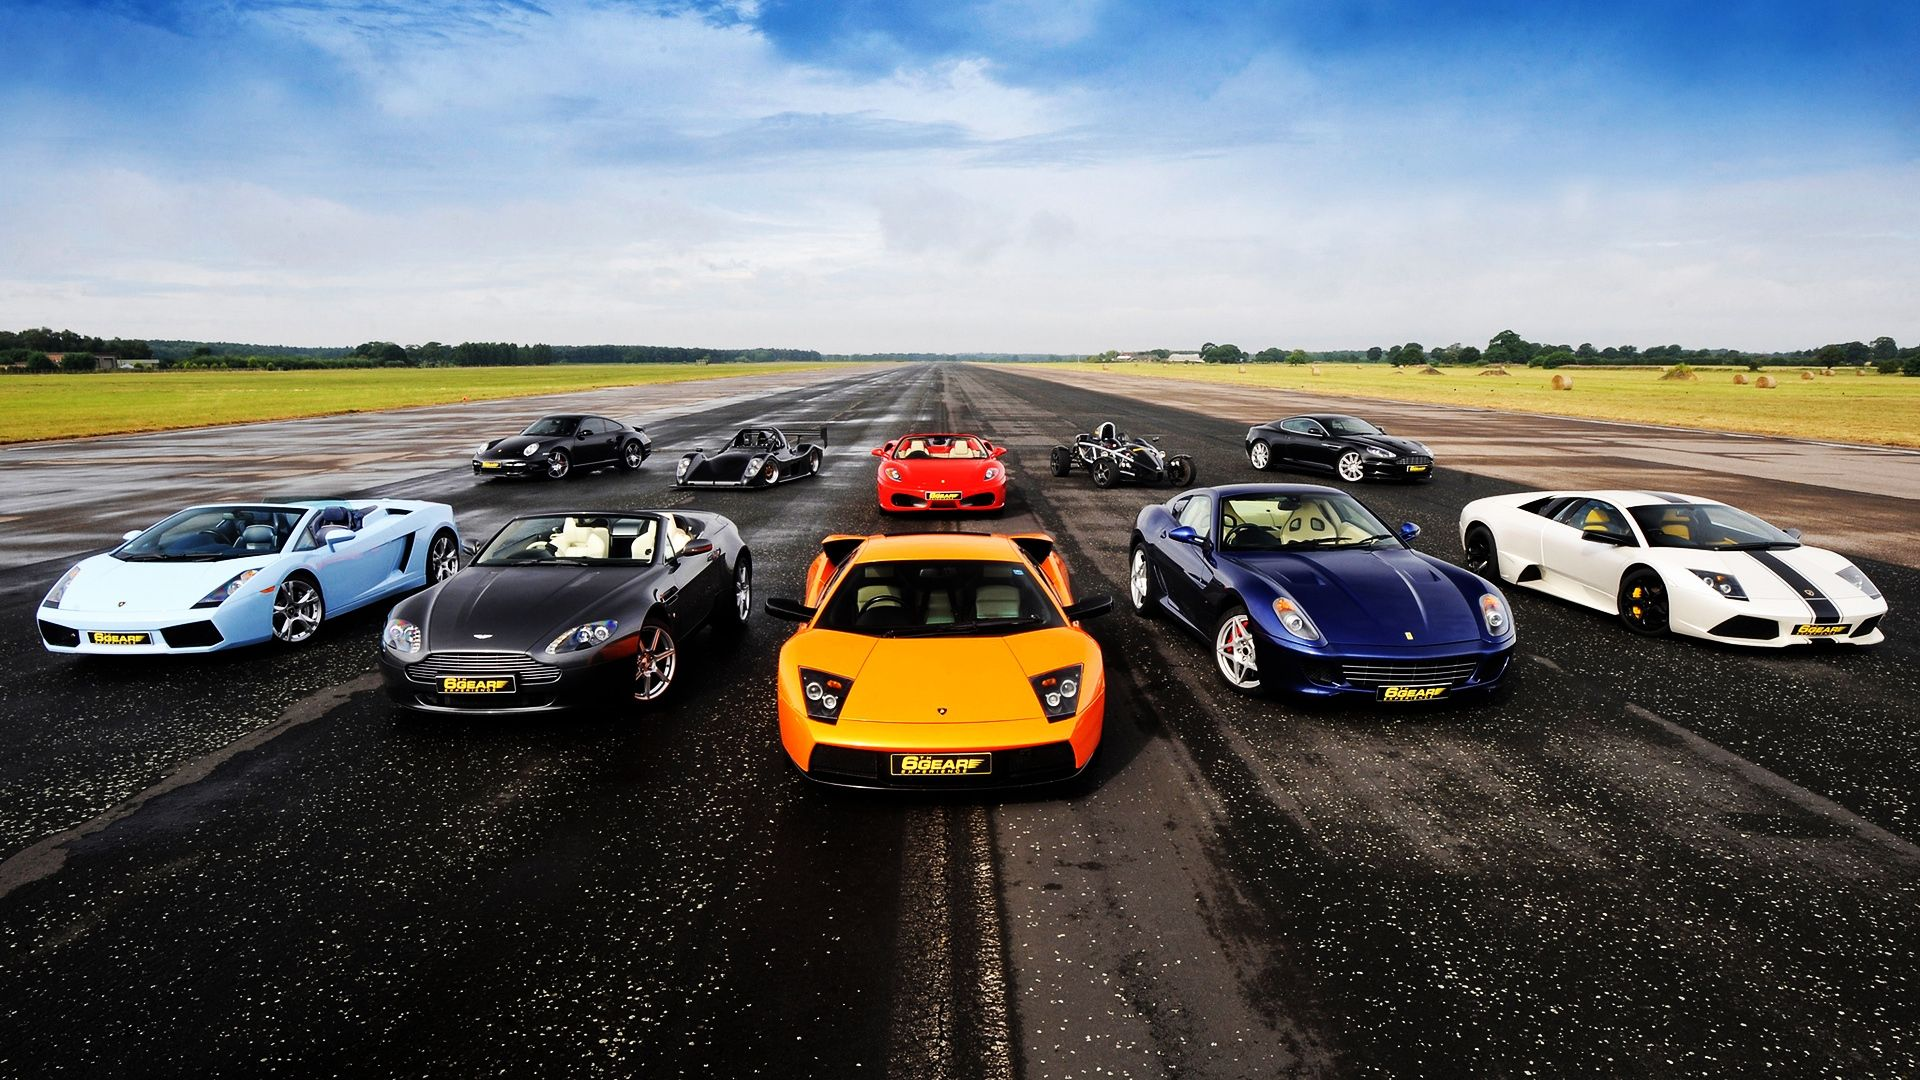 Desktop Images: Cars Wallpaper, Cars Wallpapers (#WY119, INC:48, HQFX)